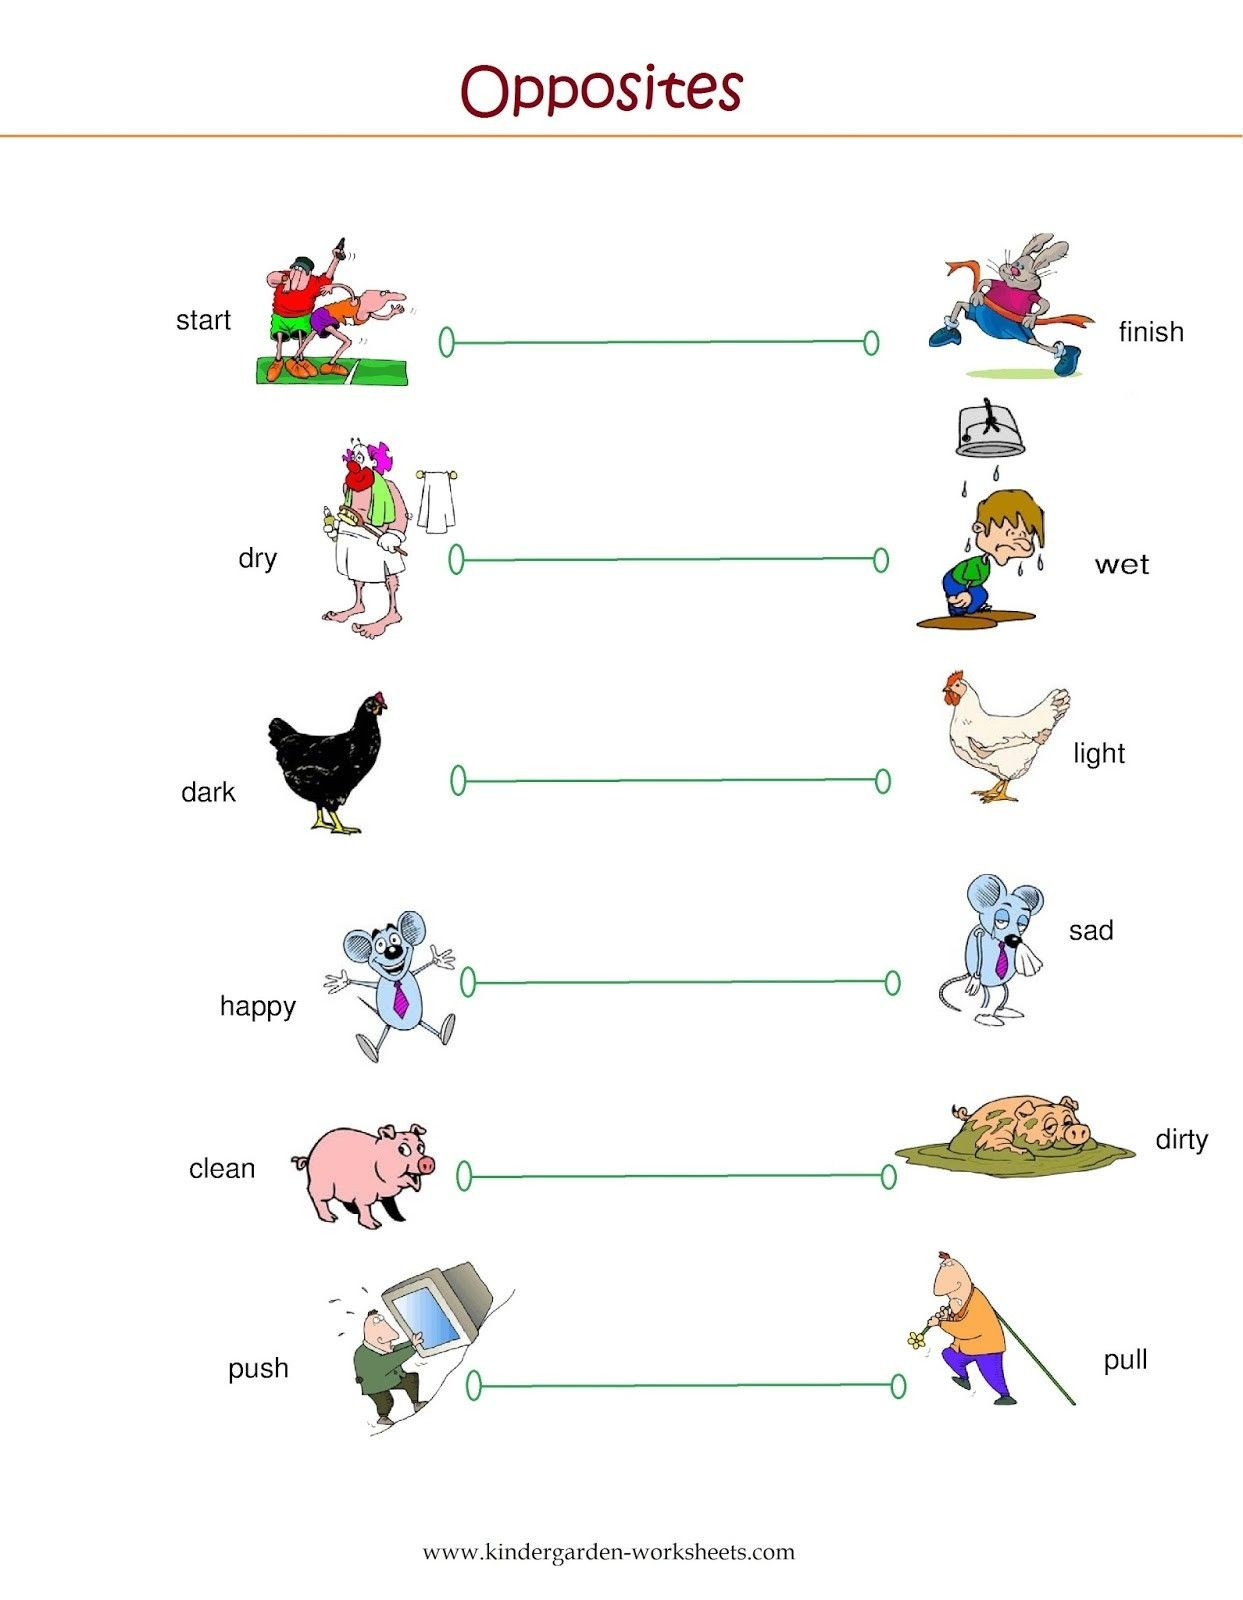 Preschool Opposites Worksheets Opposites Preschool Worksheet